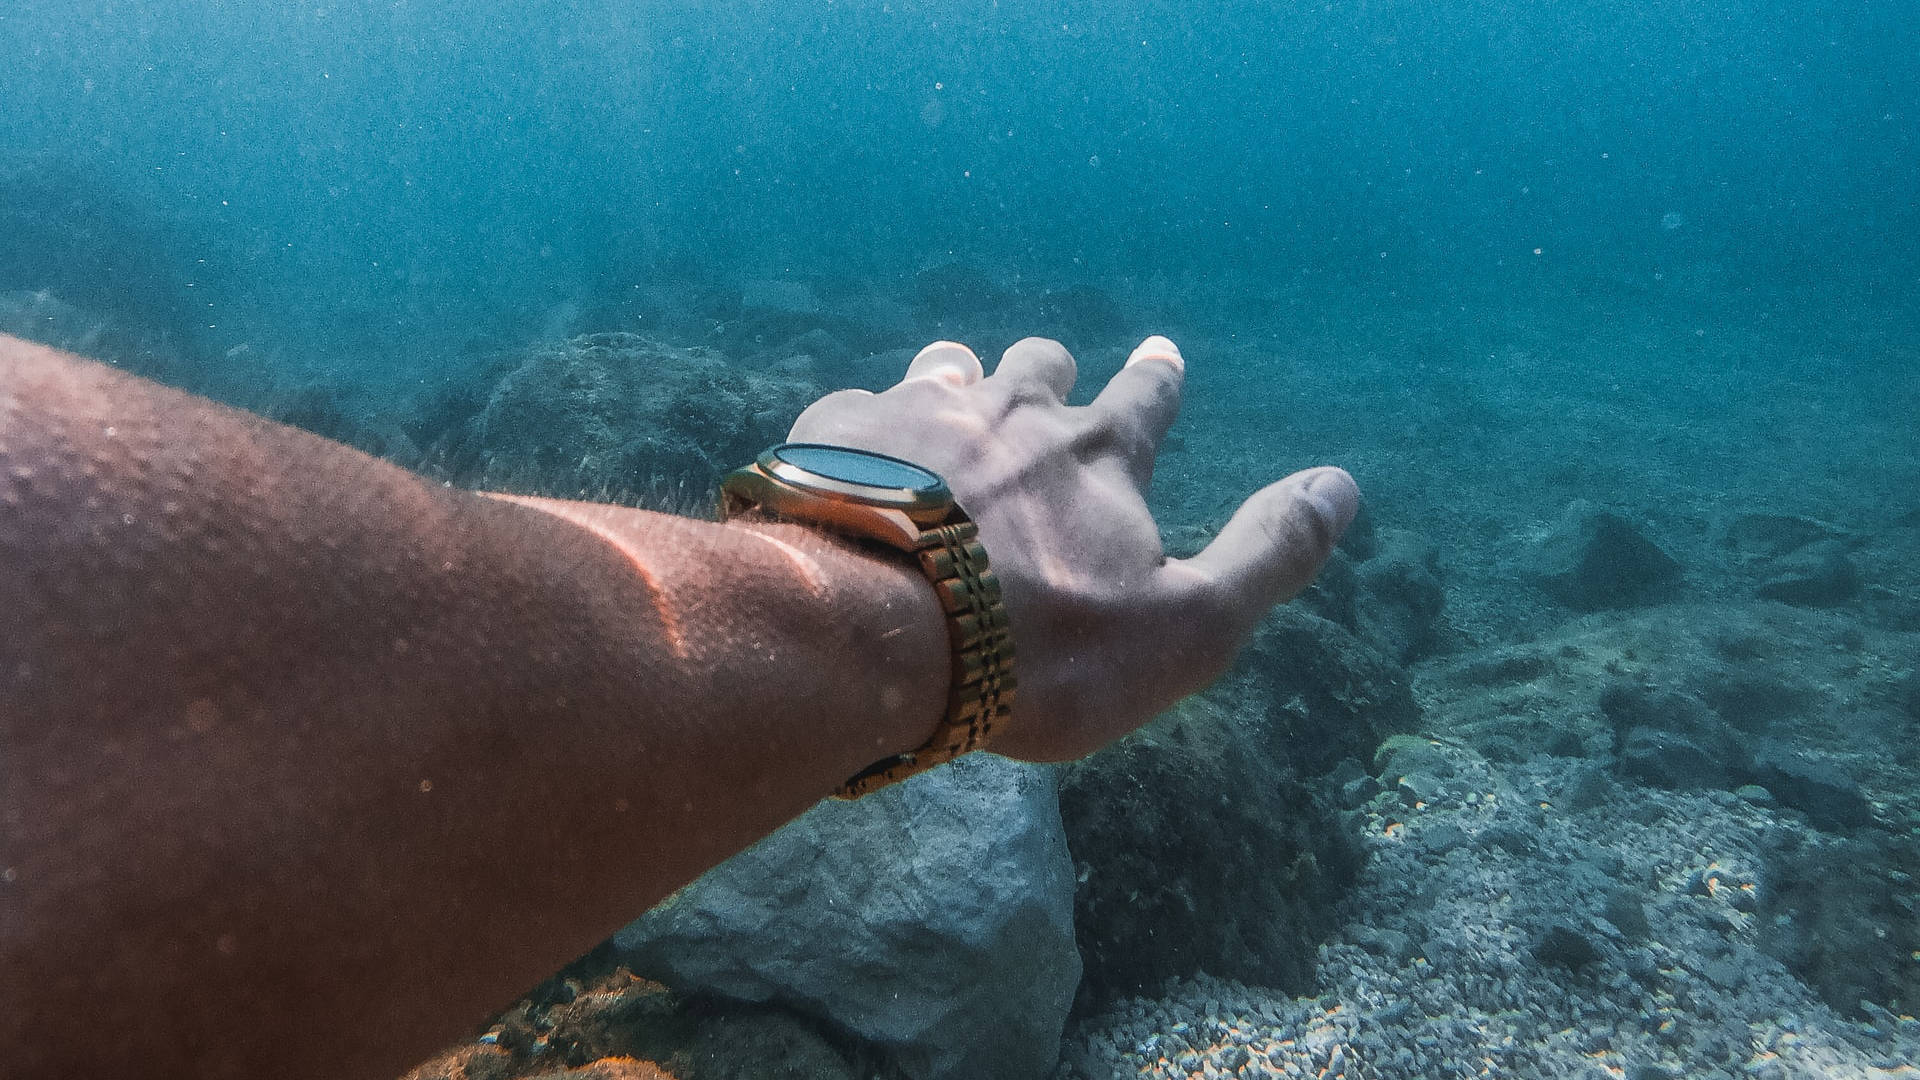 High end watch being used underwater by client in Falkirk after water resistance testing